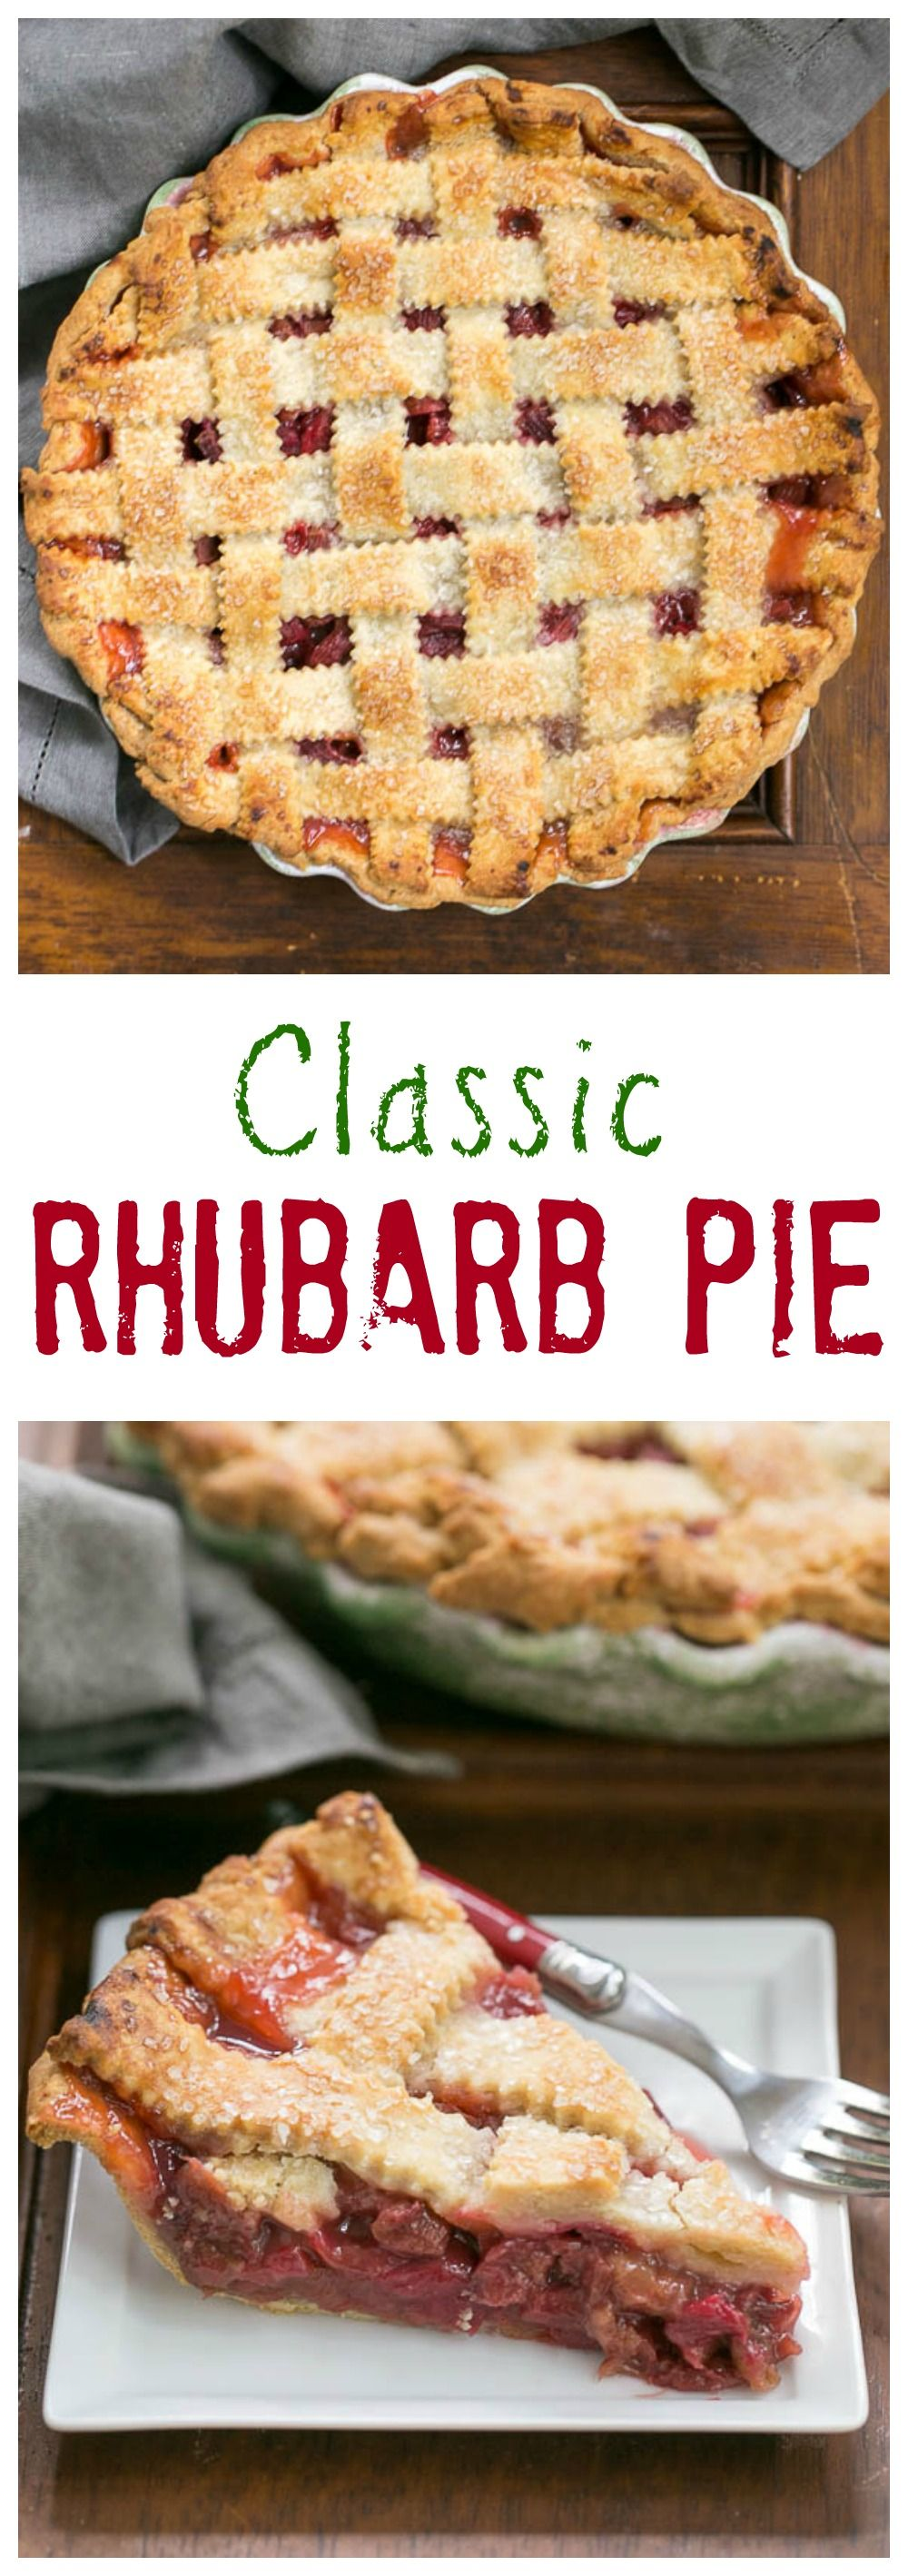 I grew up with a big rhubarb patch in our backyard  On occasion, my mom would surprise us with this Classic Rhubarb Pie  Double crust, no custard, just plain delicious! @lizzydo is part of Rhubarb recipes pie -